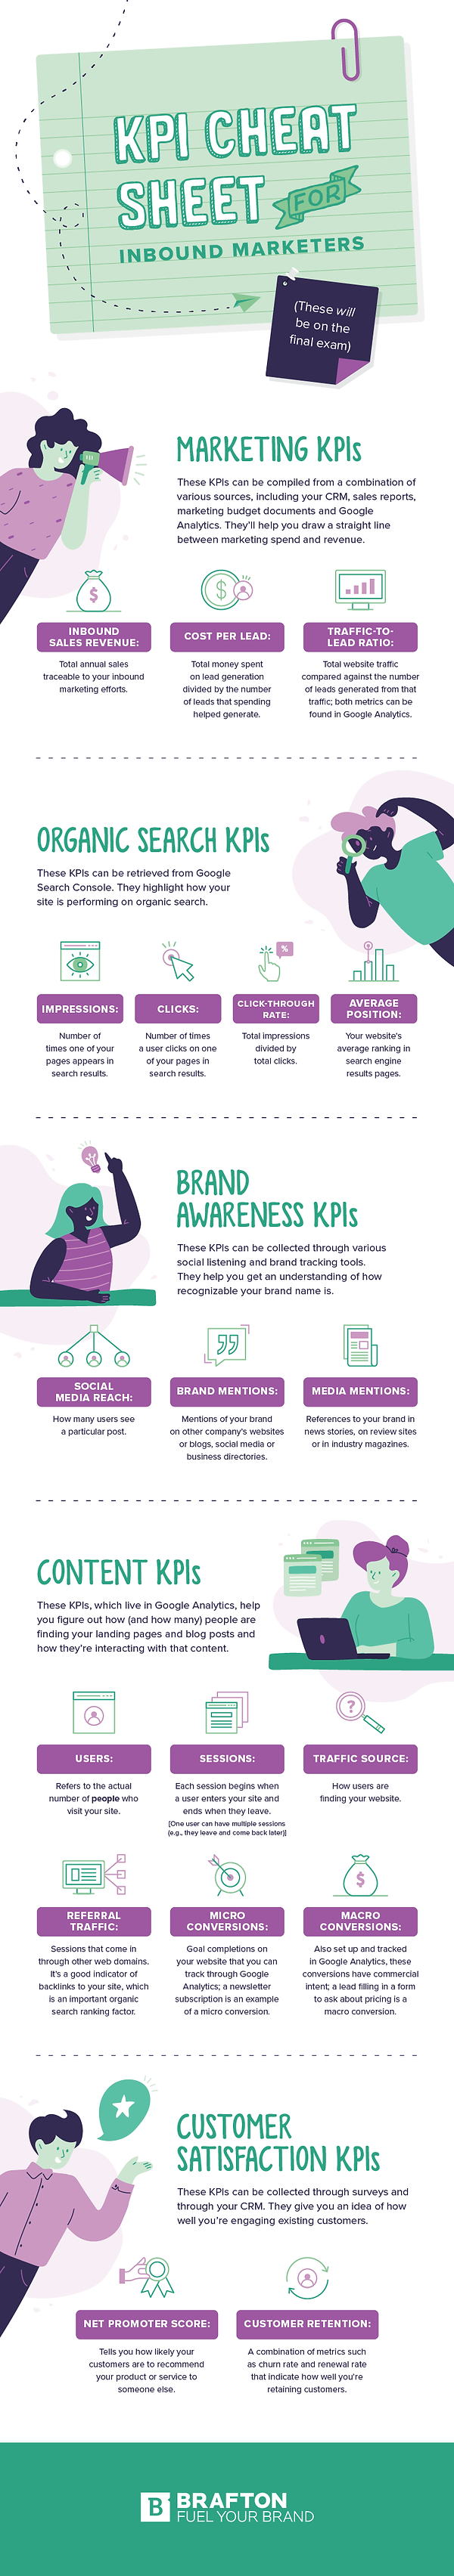 marketing-KPIs-infographic.png